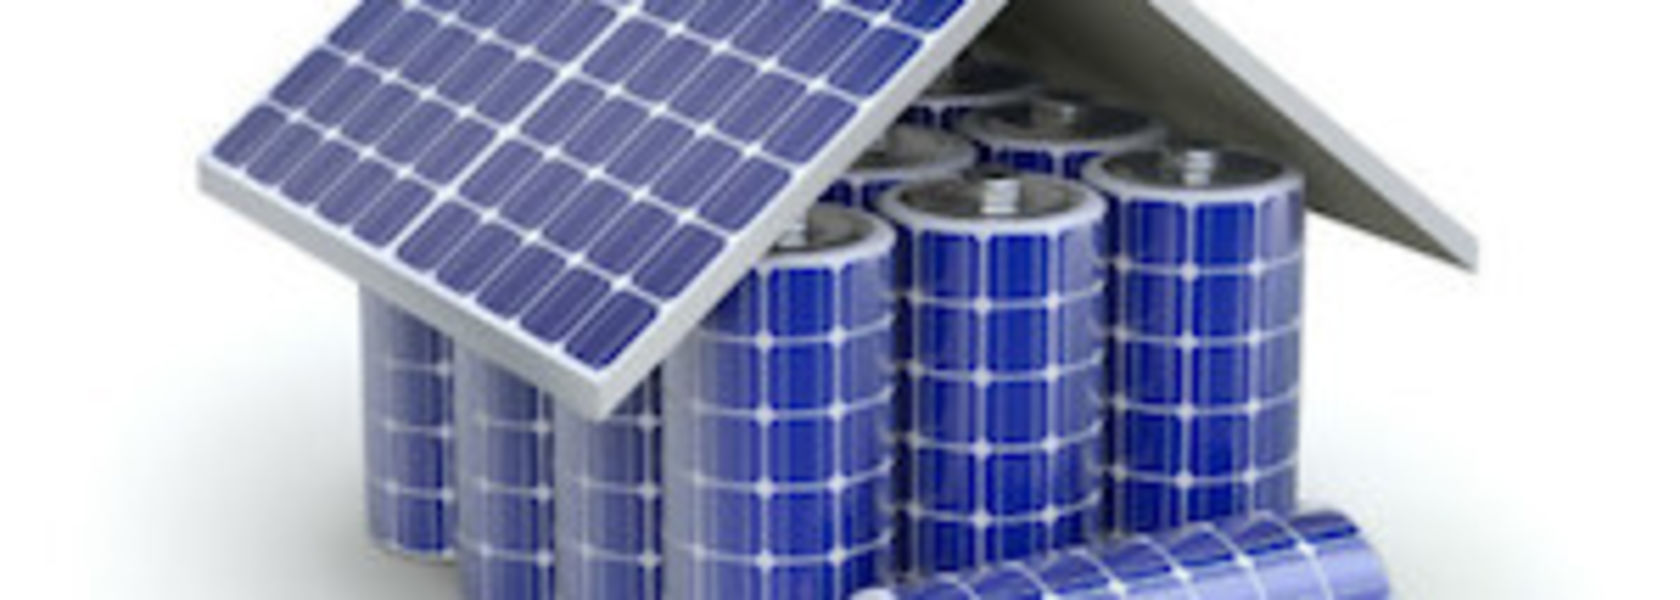 Energy storage could struggle to reach full potential